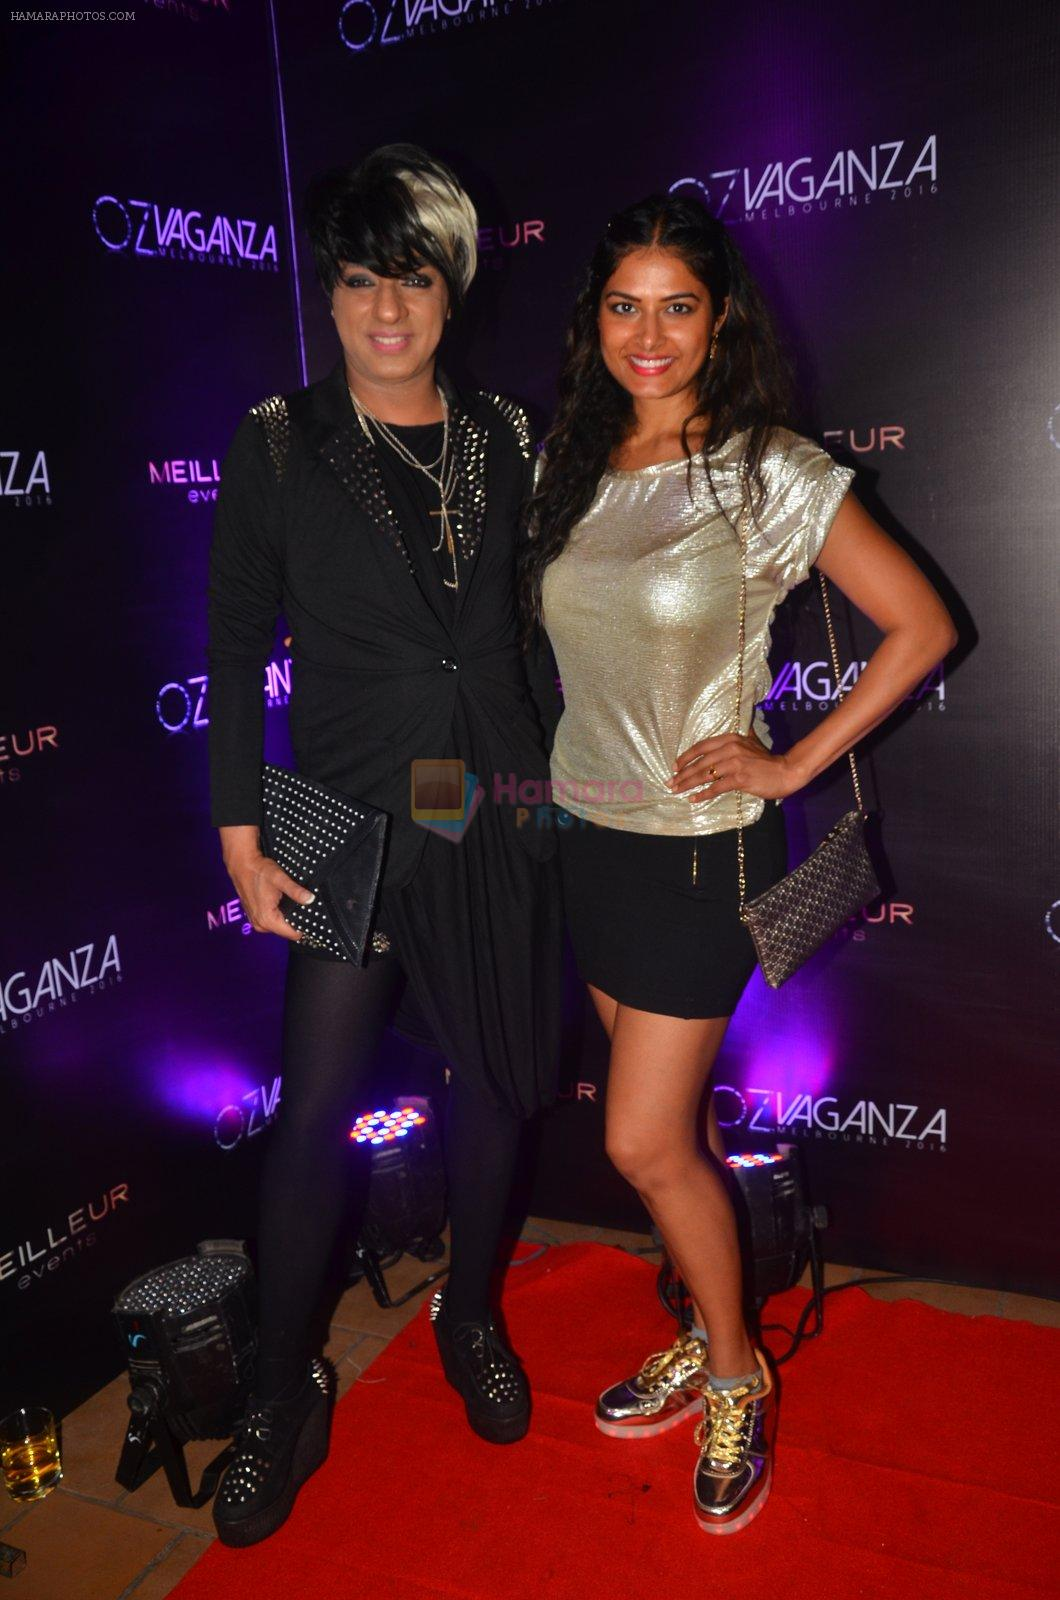 Rohit Verma at Oz fashion event in Mumbai on 23rd Aug 2016